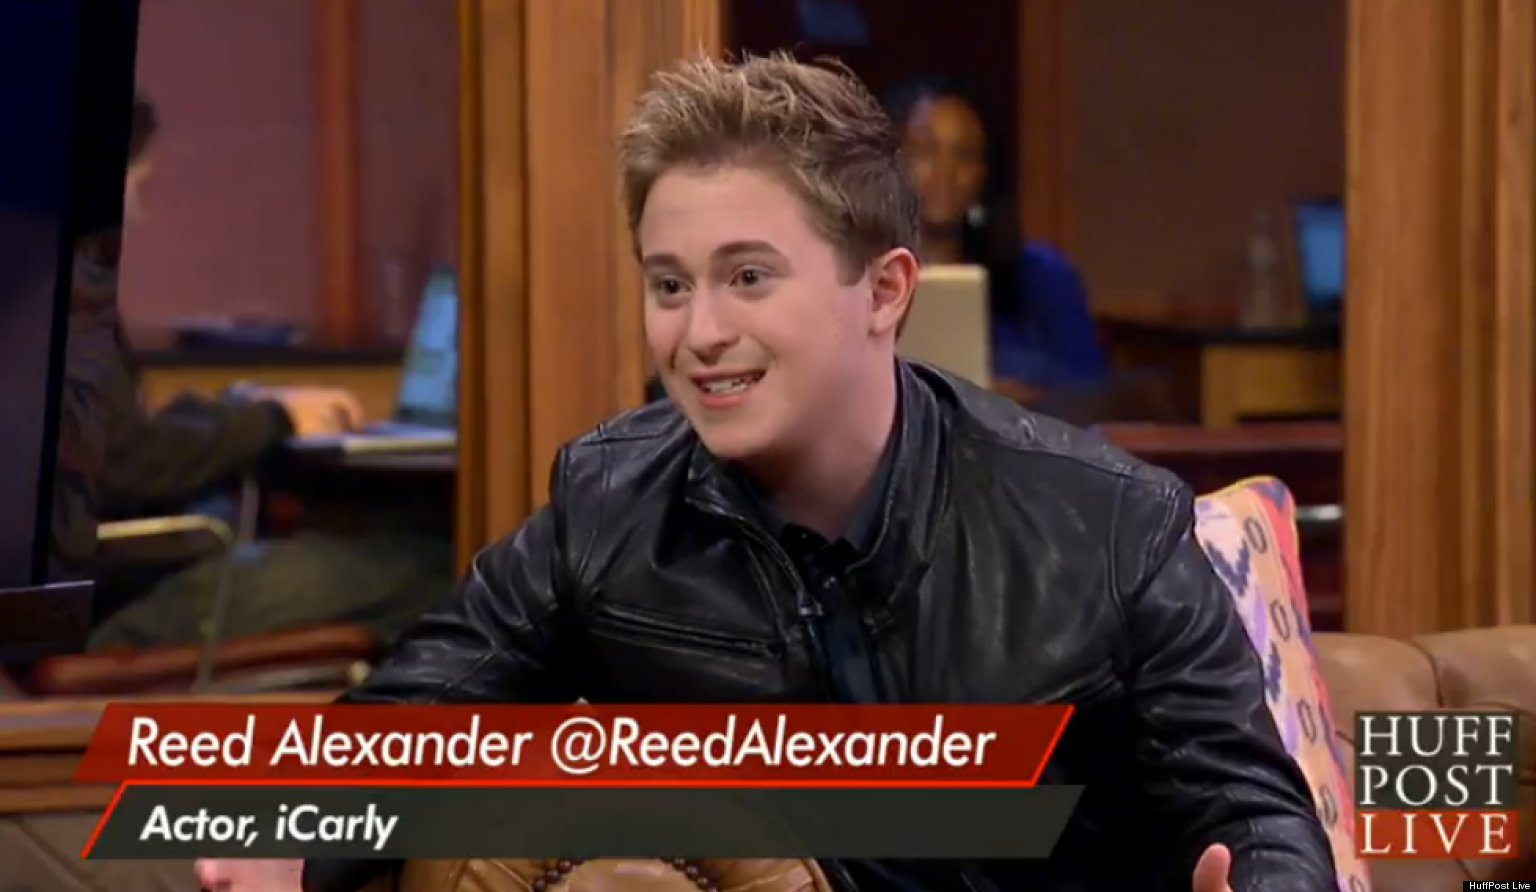 reed alexander today show